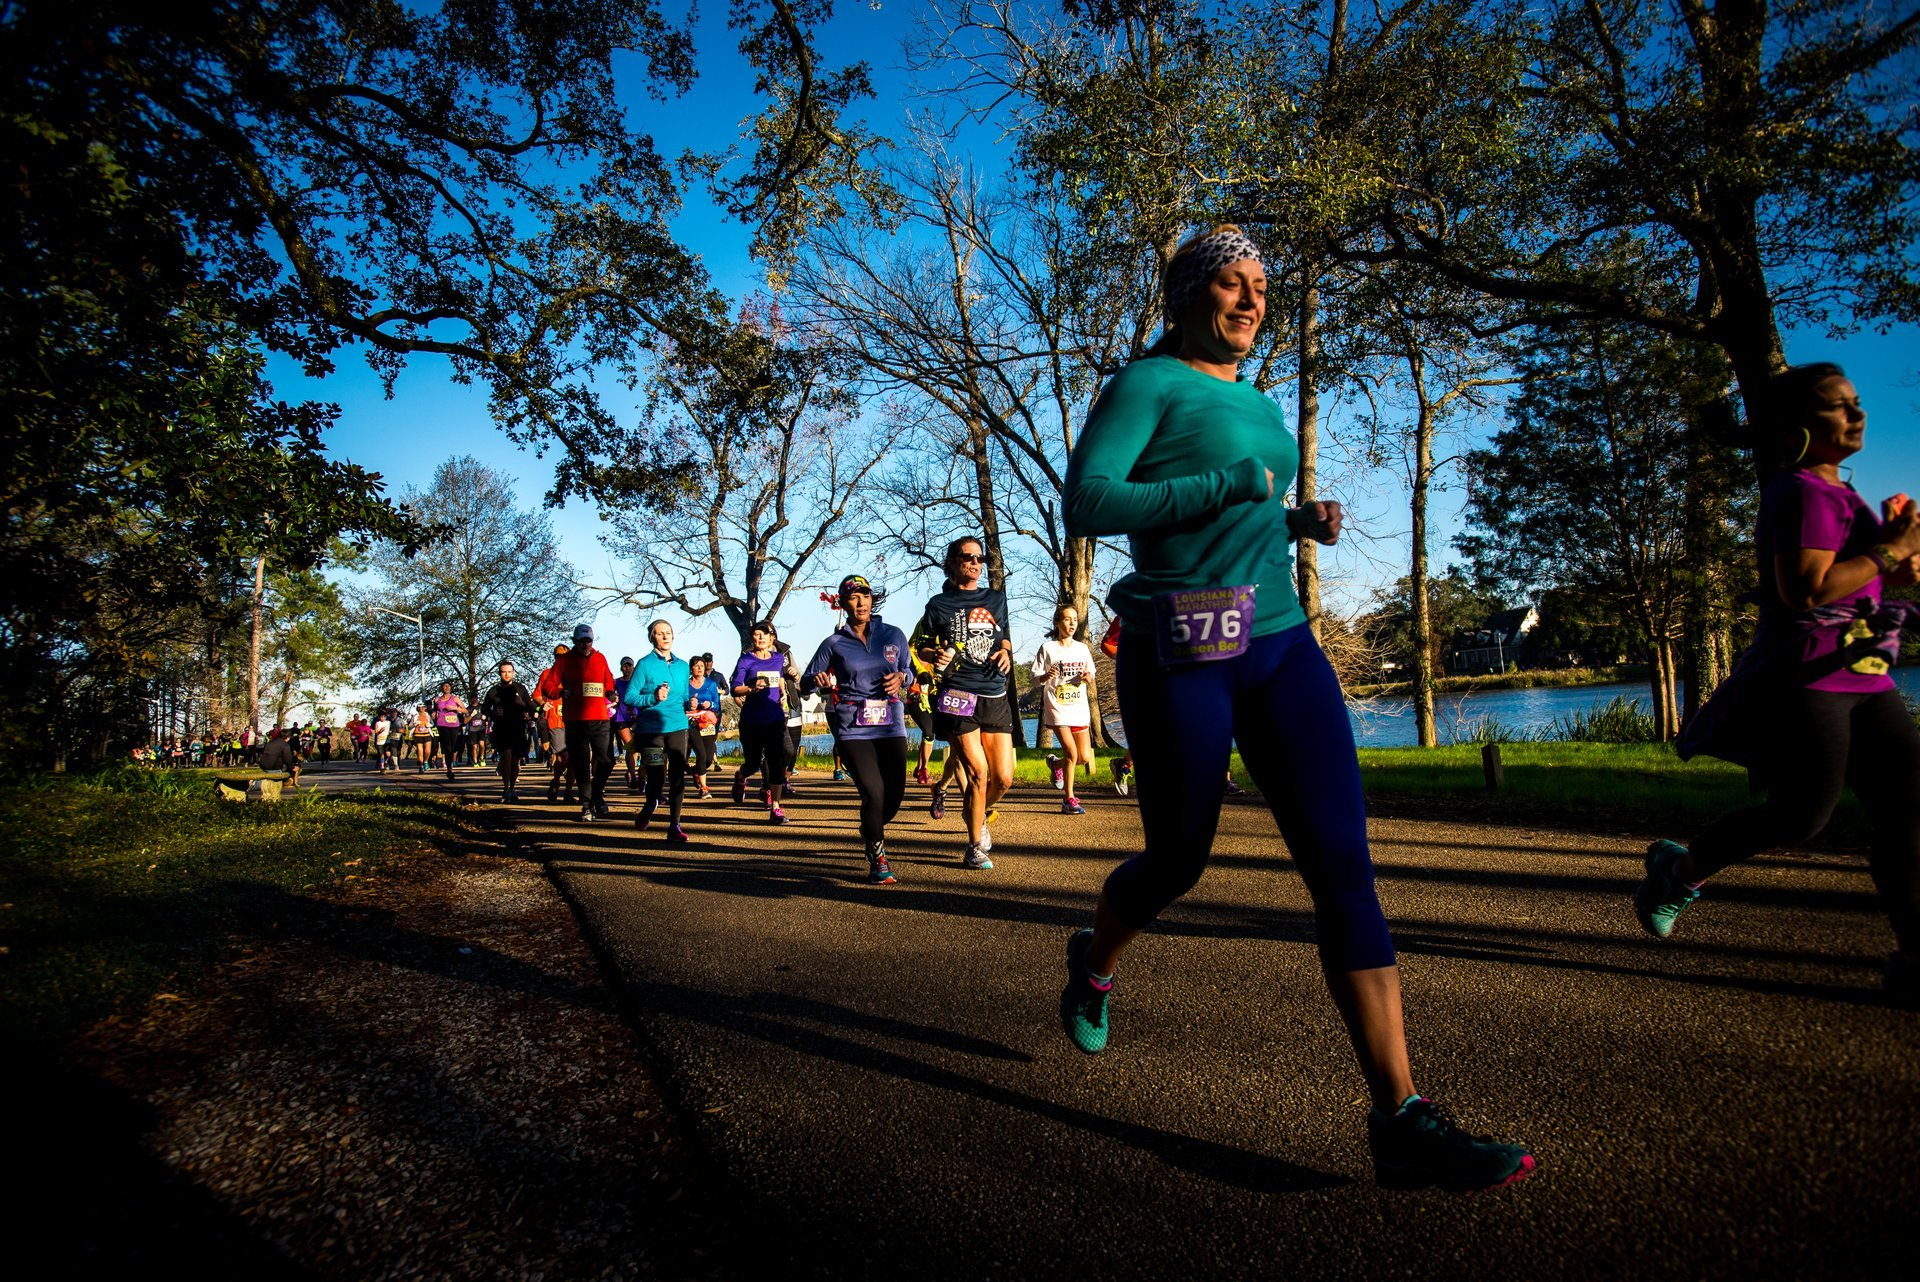 Louisiana Marathon in Louisiana 2020 - Best Time